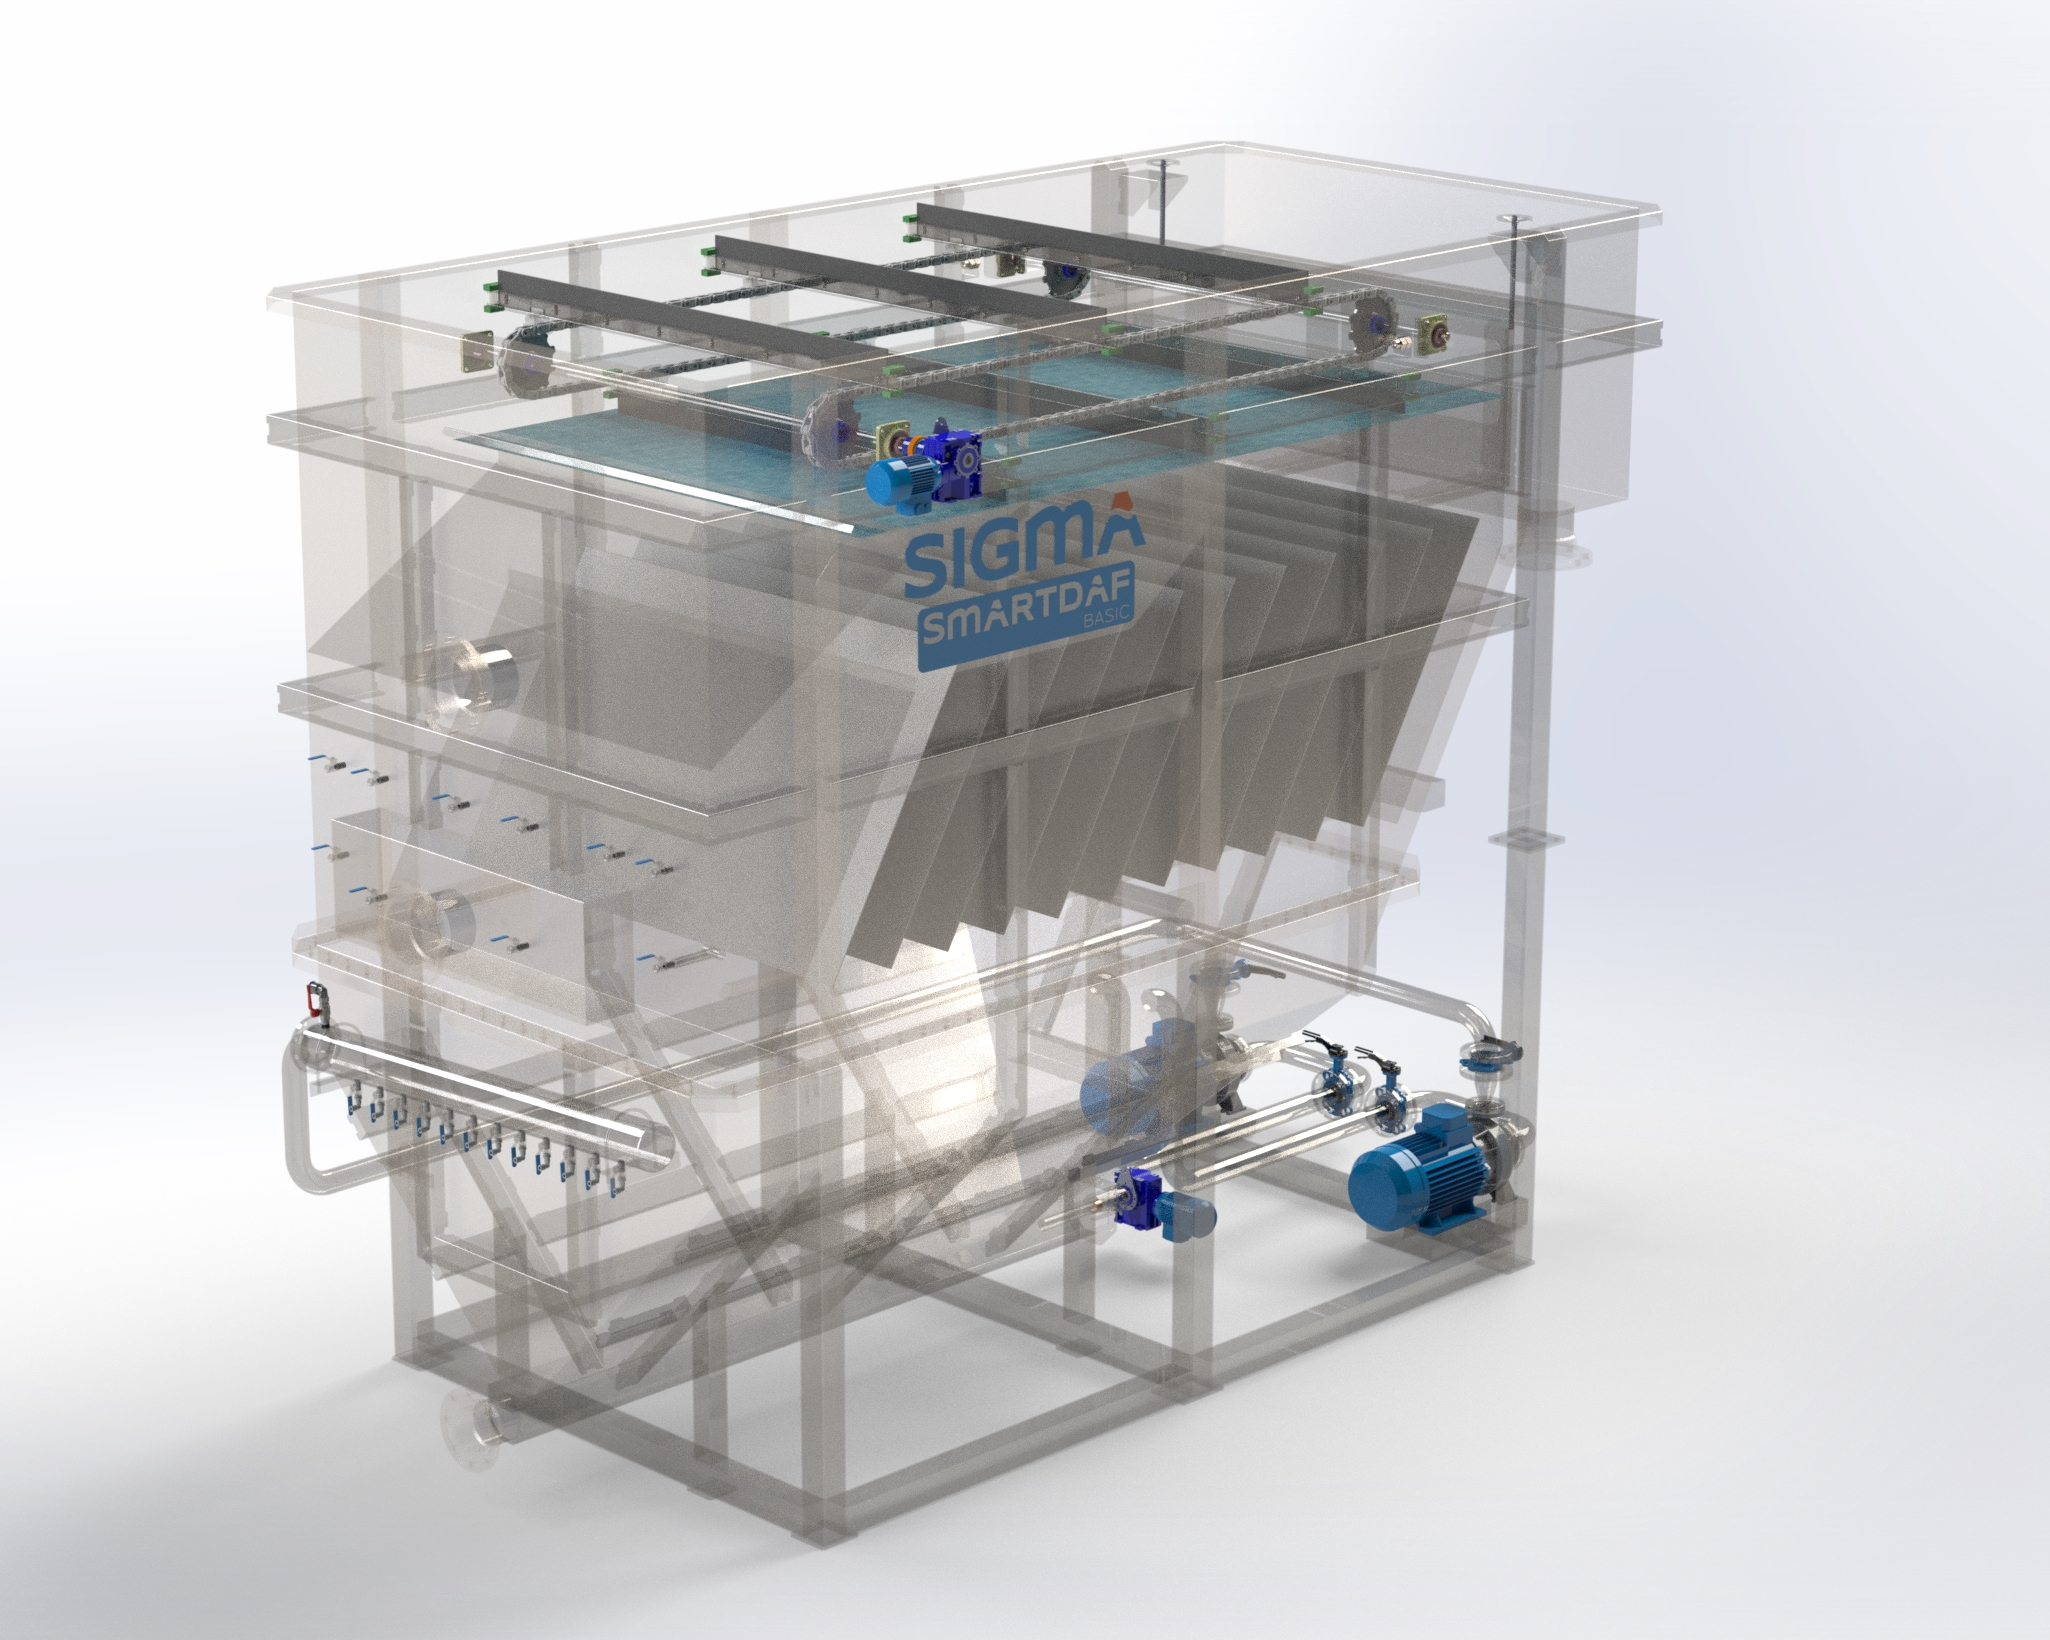 A rendered image of Sigma DAF FPBC flotation system